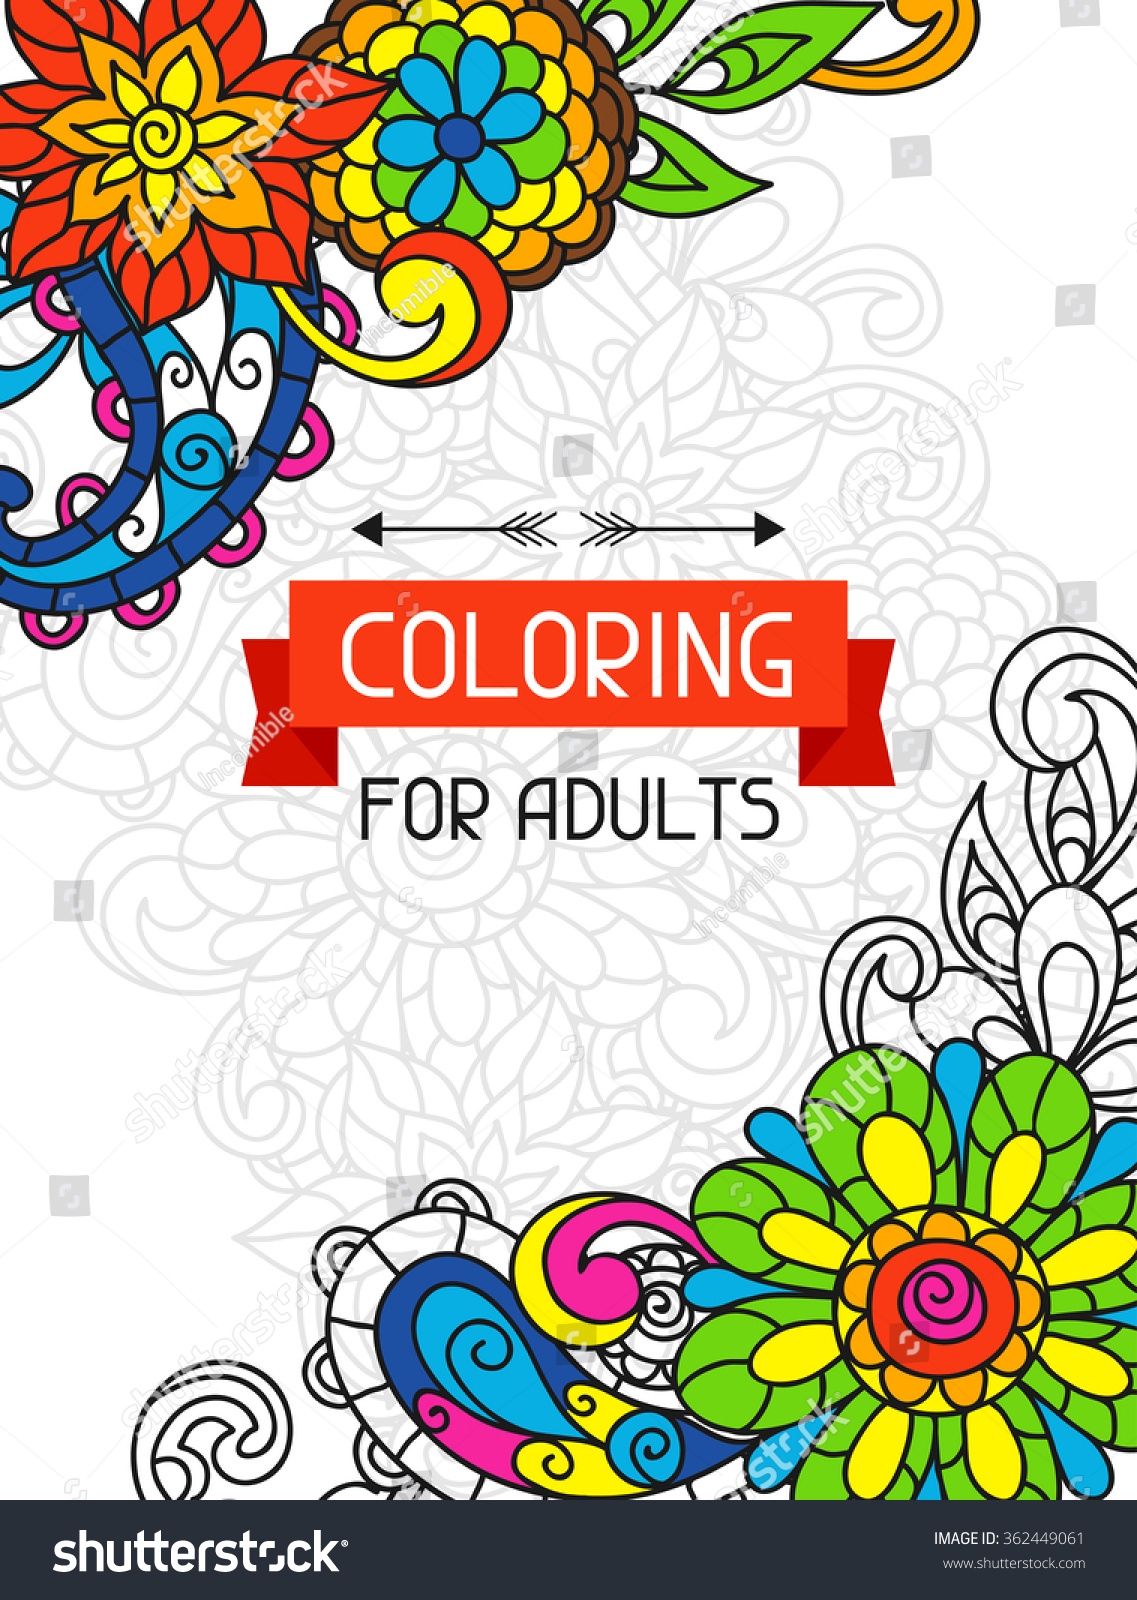 Adult Coloring Book Design For Cover Illustration Of Trend Item To Relieve Stress And Creativity